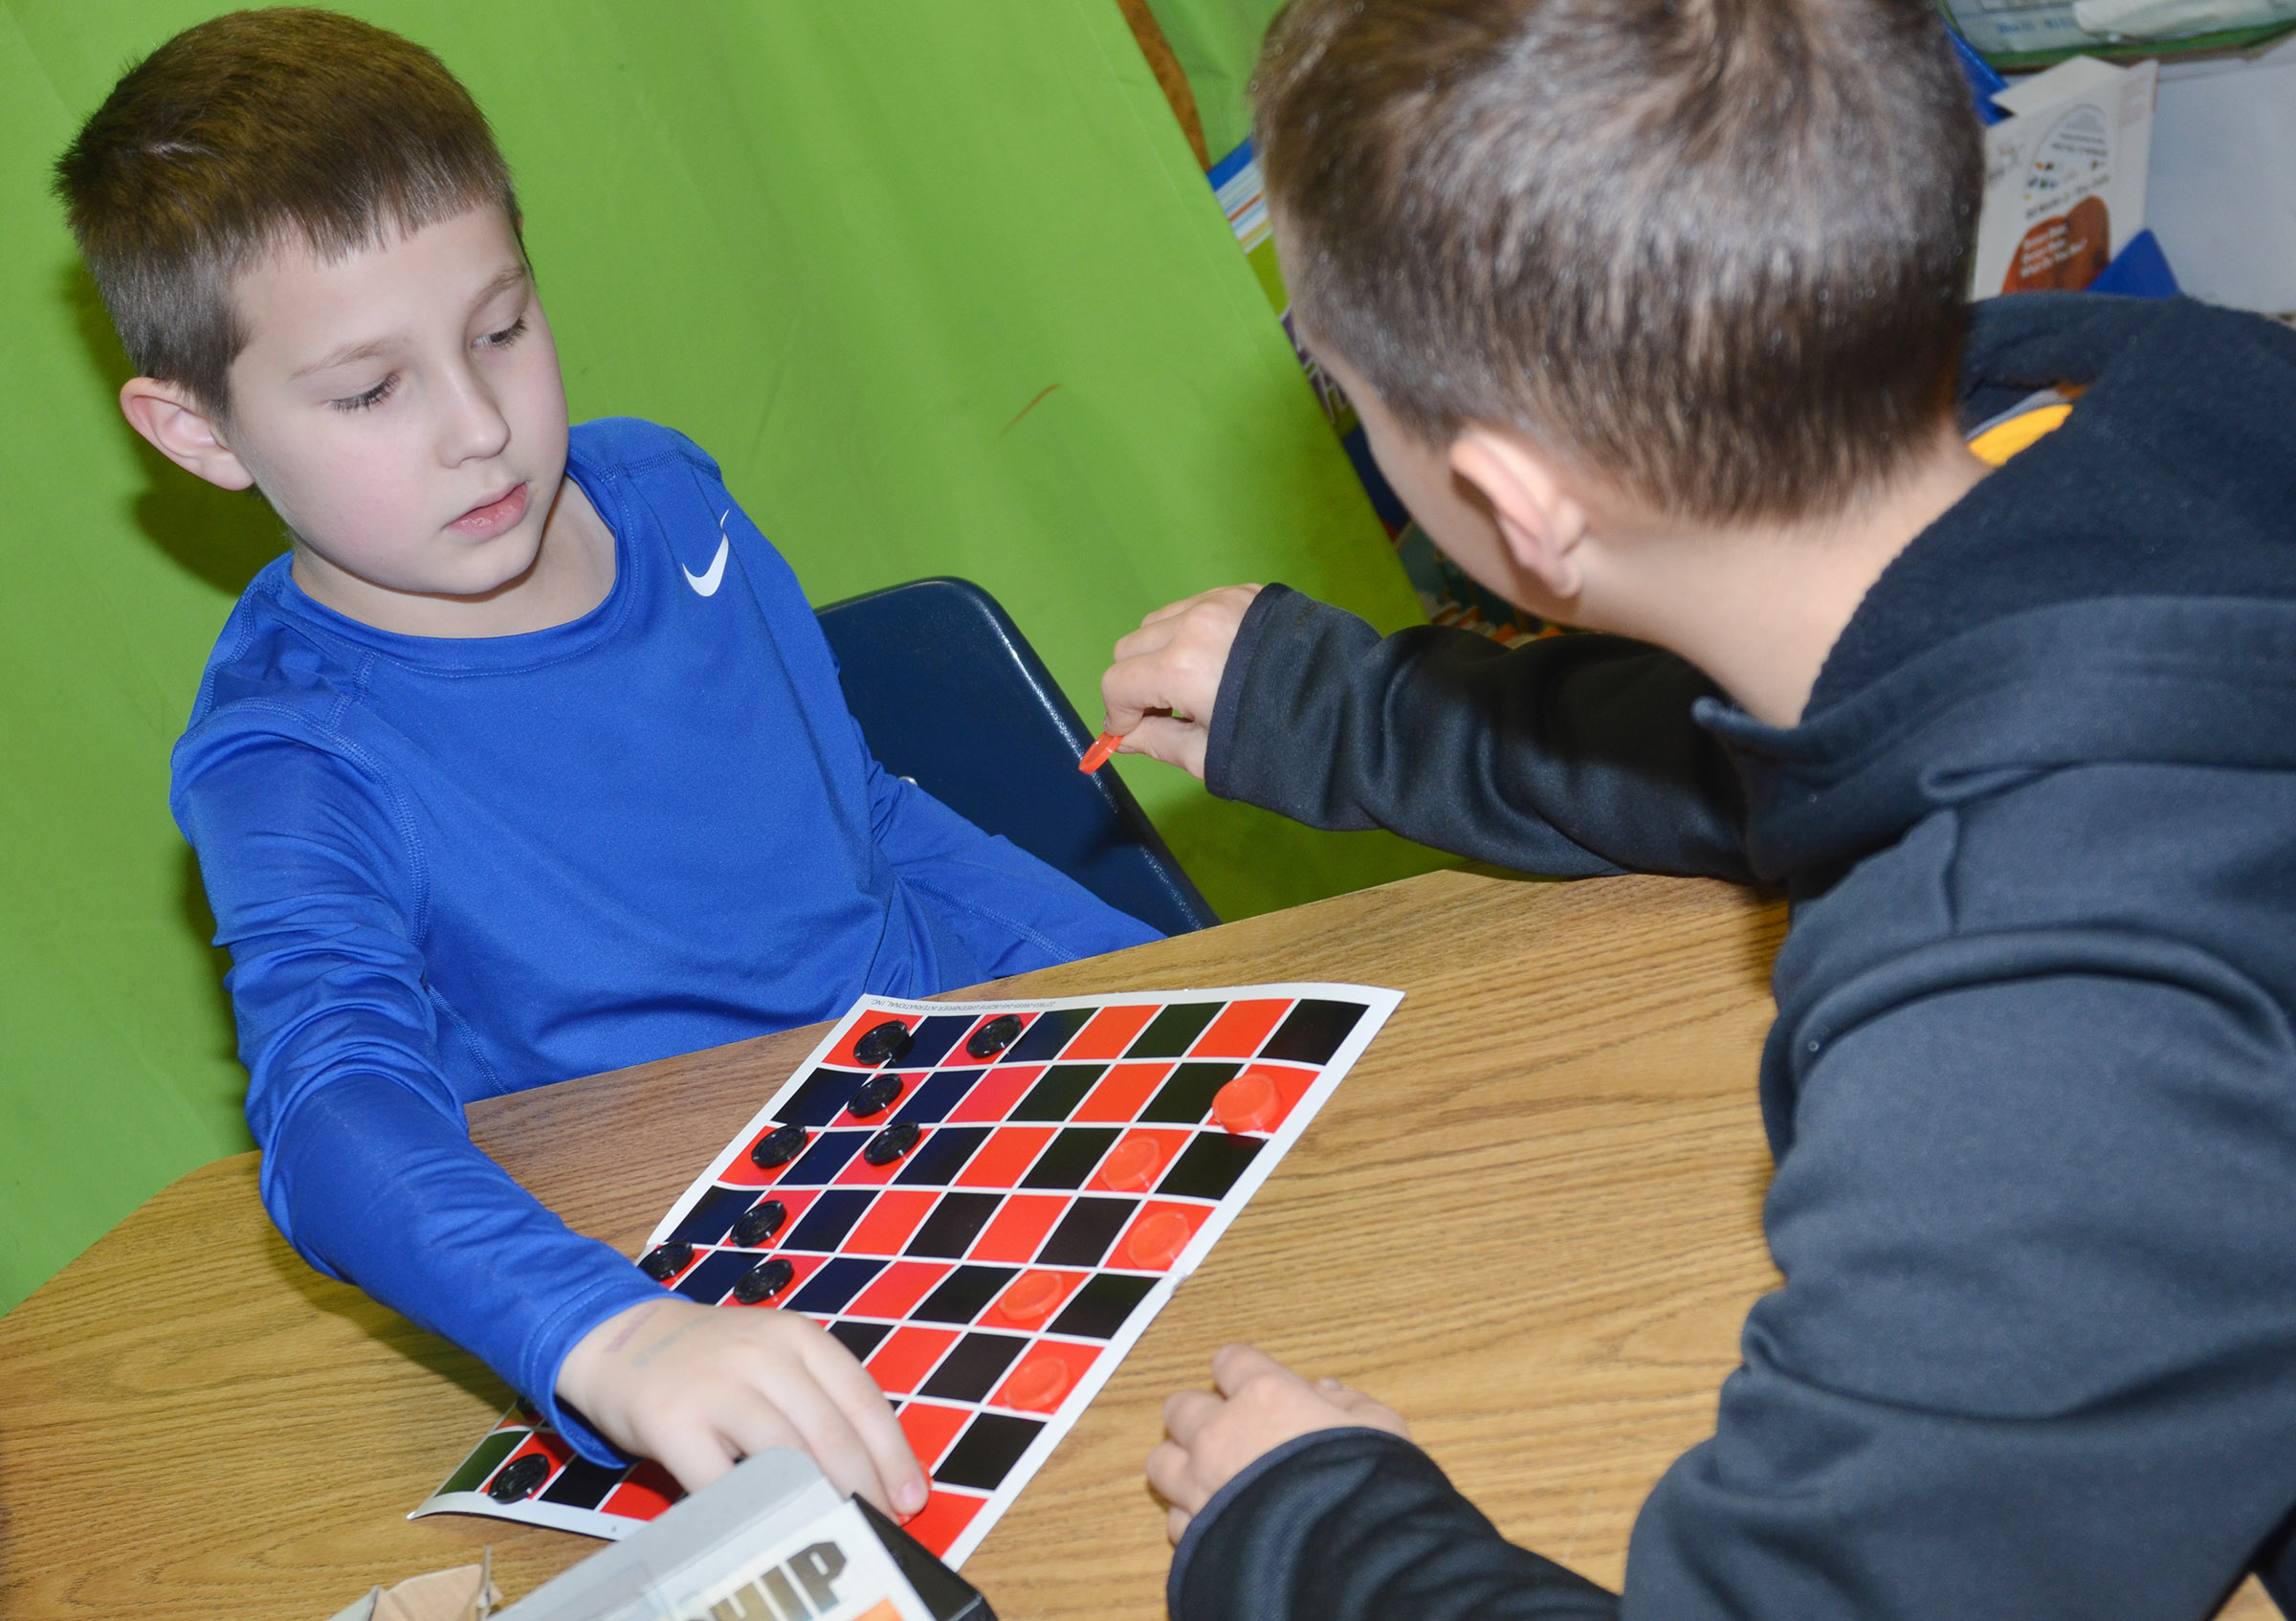 CES third-grader Grayson Dooley plays checkers with his classmate.